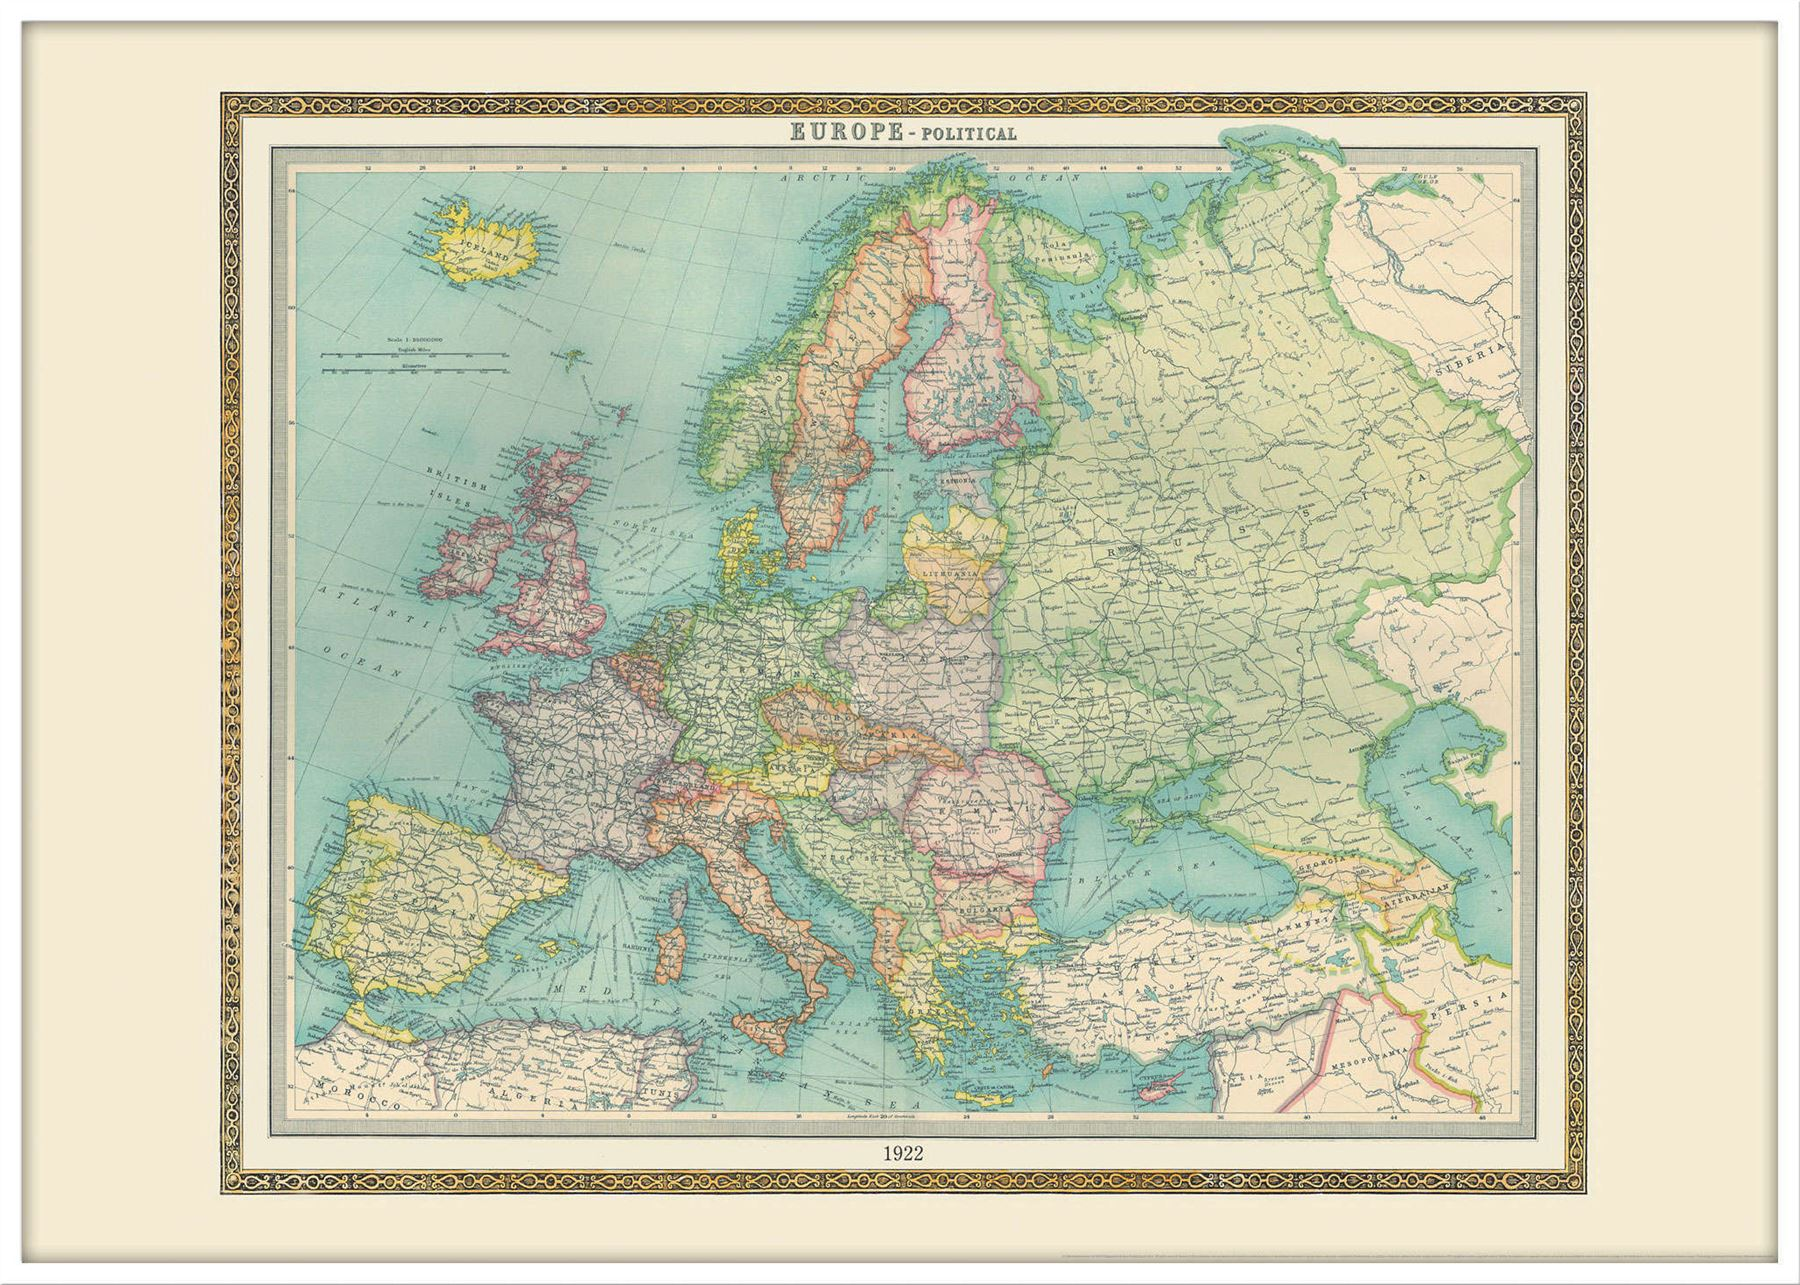 Vintage Political Europe Map Poster For Office With Size - Vintage europe map poster